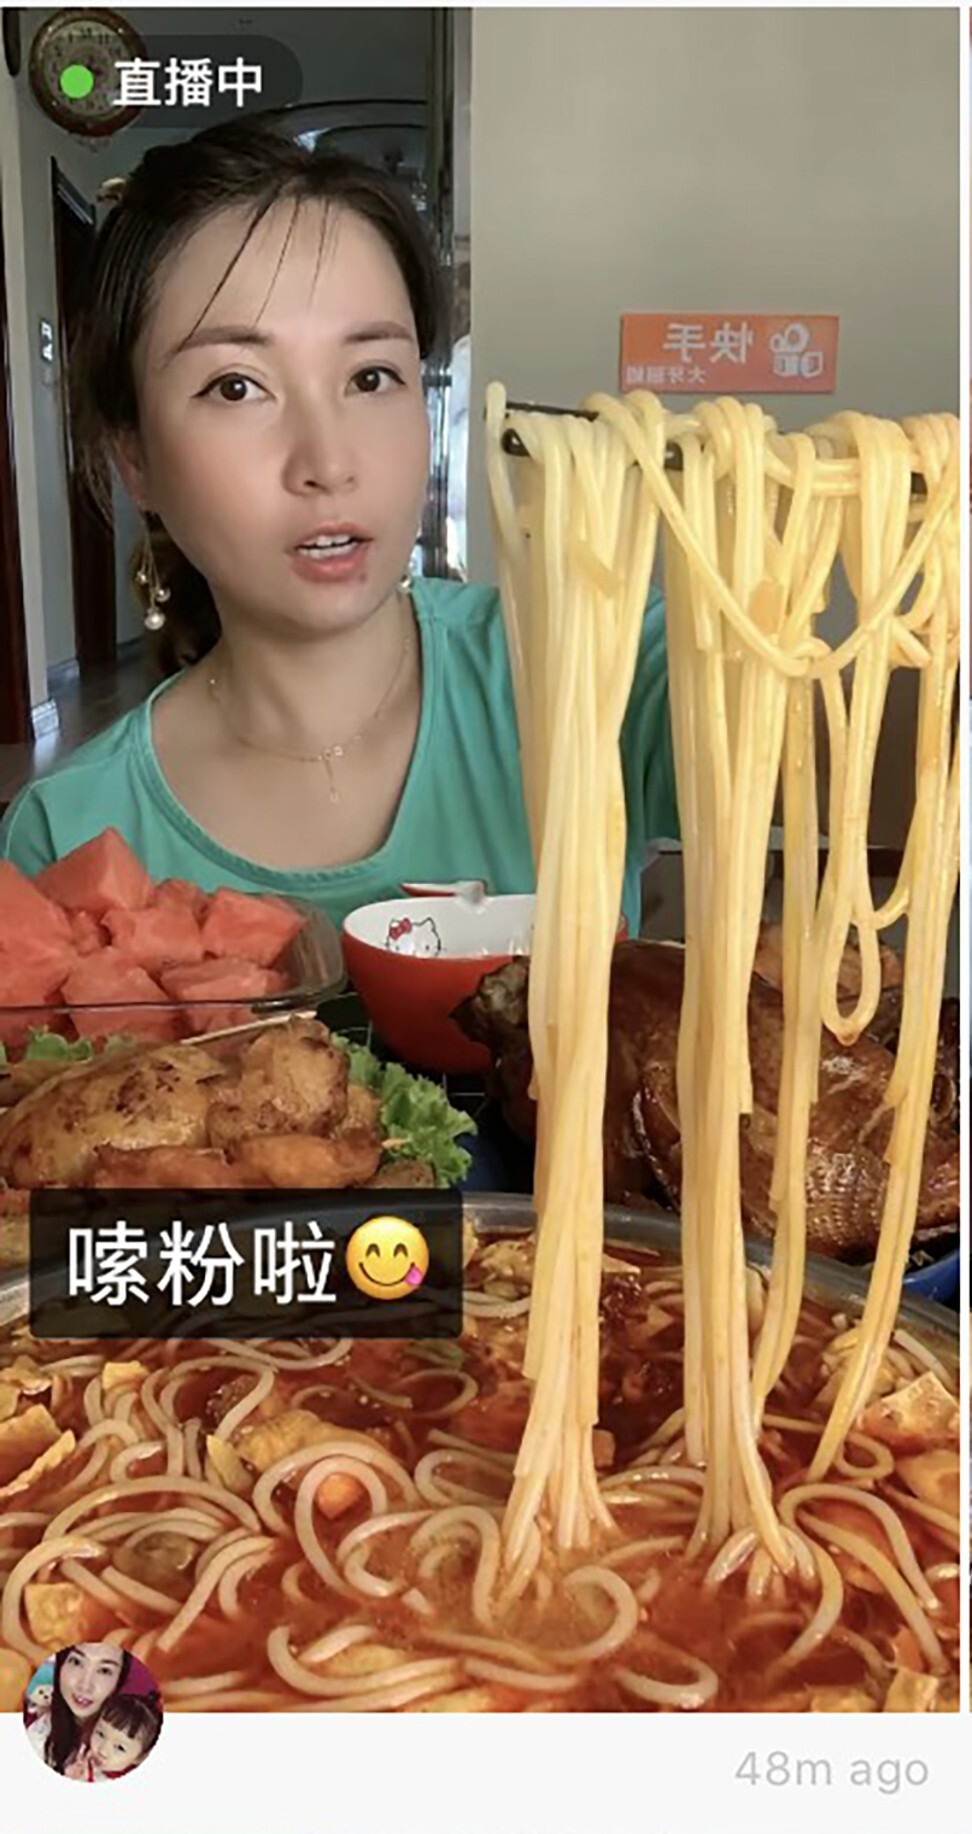 Chinese short video platforms Douyin and Kuaishou now show a reminder to users who search keywords related to eating shows, urging them to not waste food. Photo: SCMP